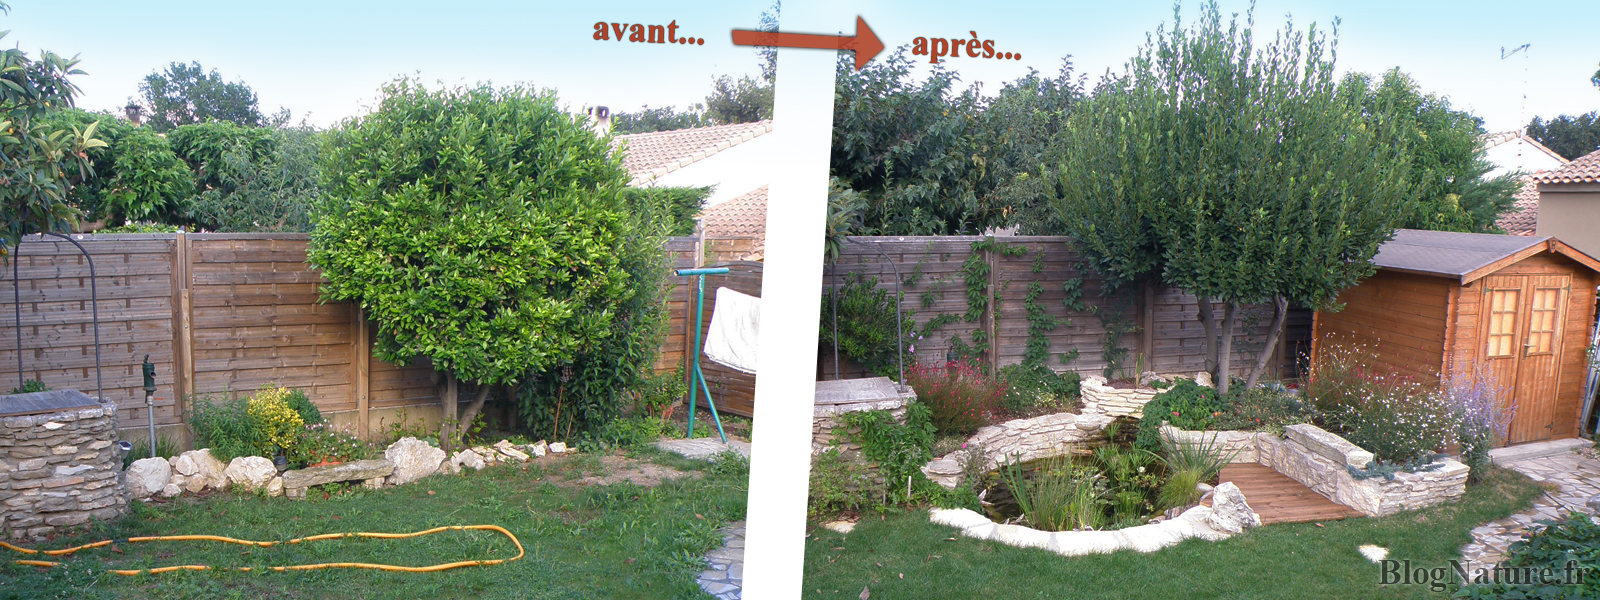 R ve de gosse un bassin dans le jardin for Jardin 50m2 amenager